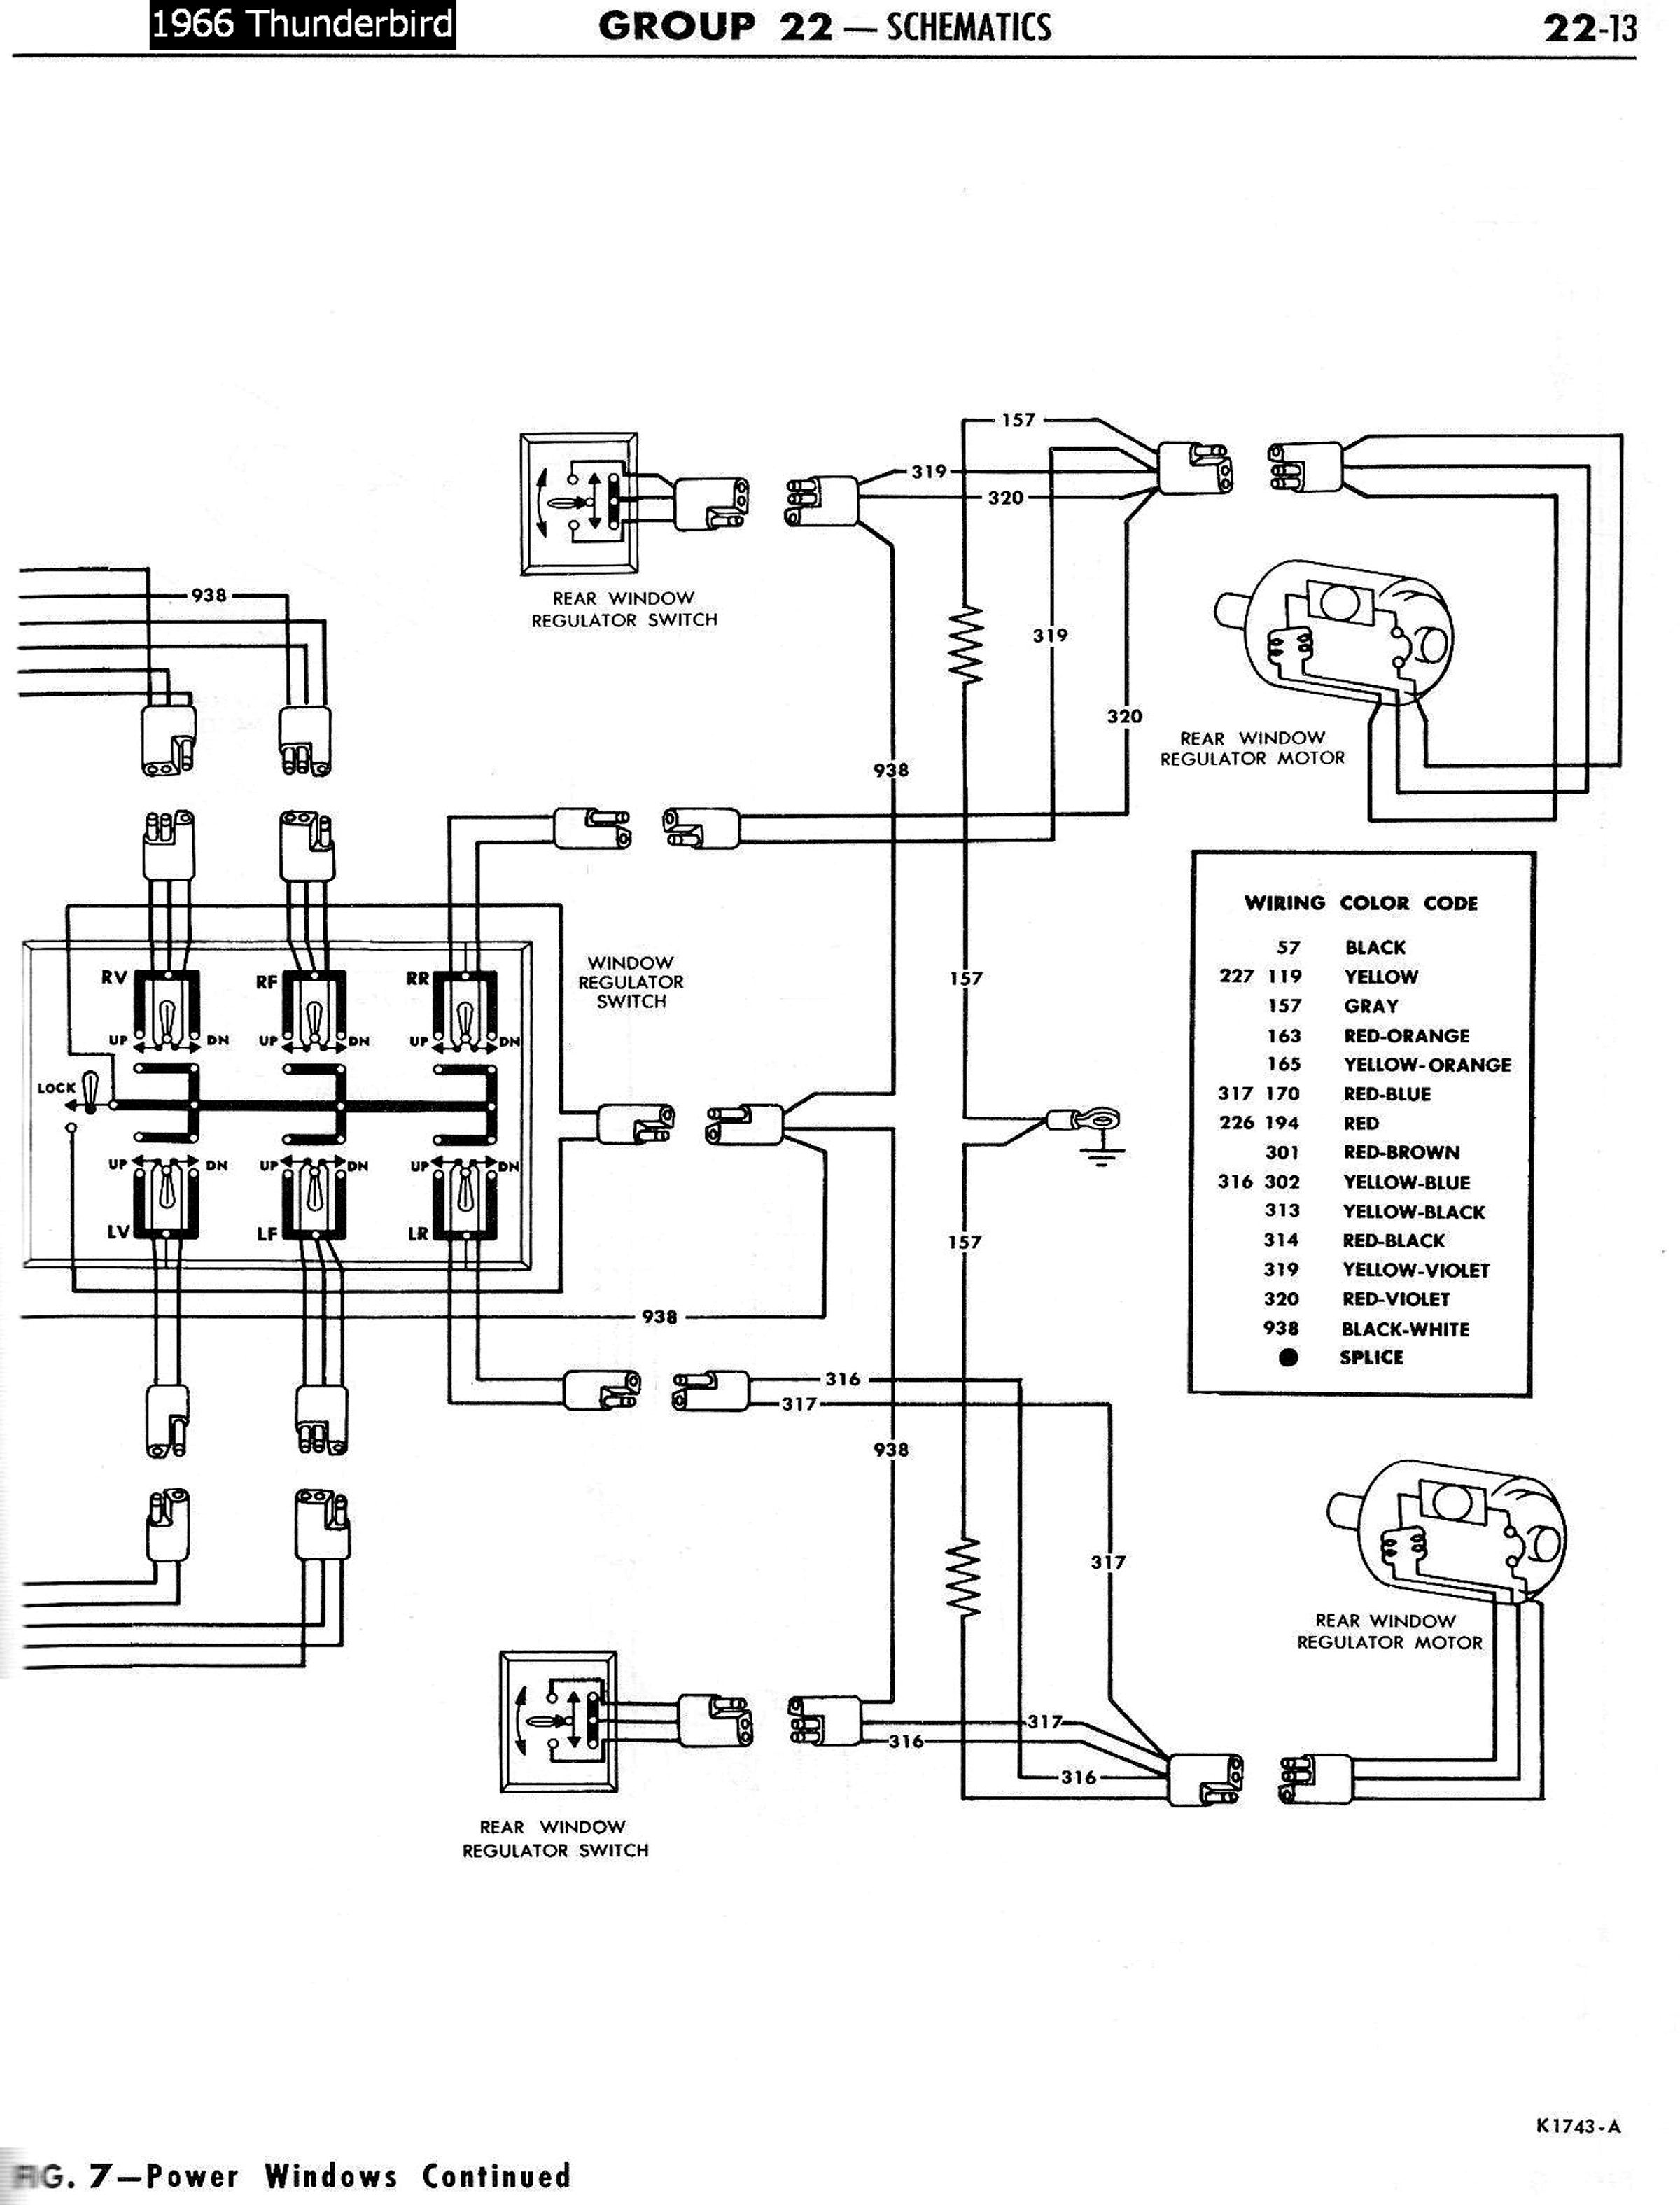 68 thunderbird wiring diagram schematics online 1996 jaguar xj6 engine diagram